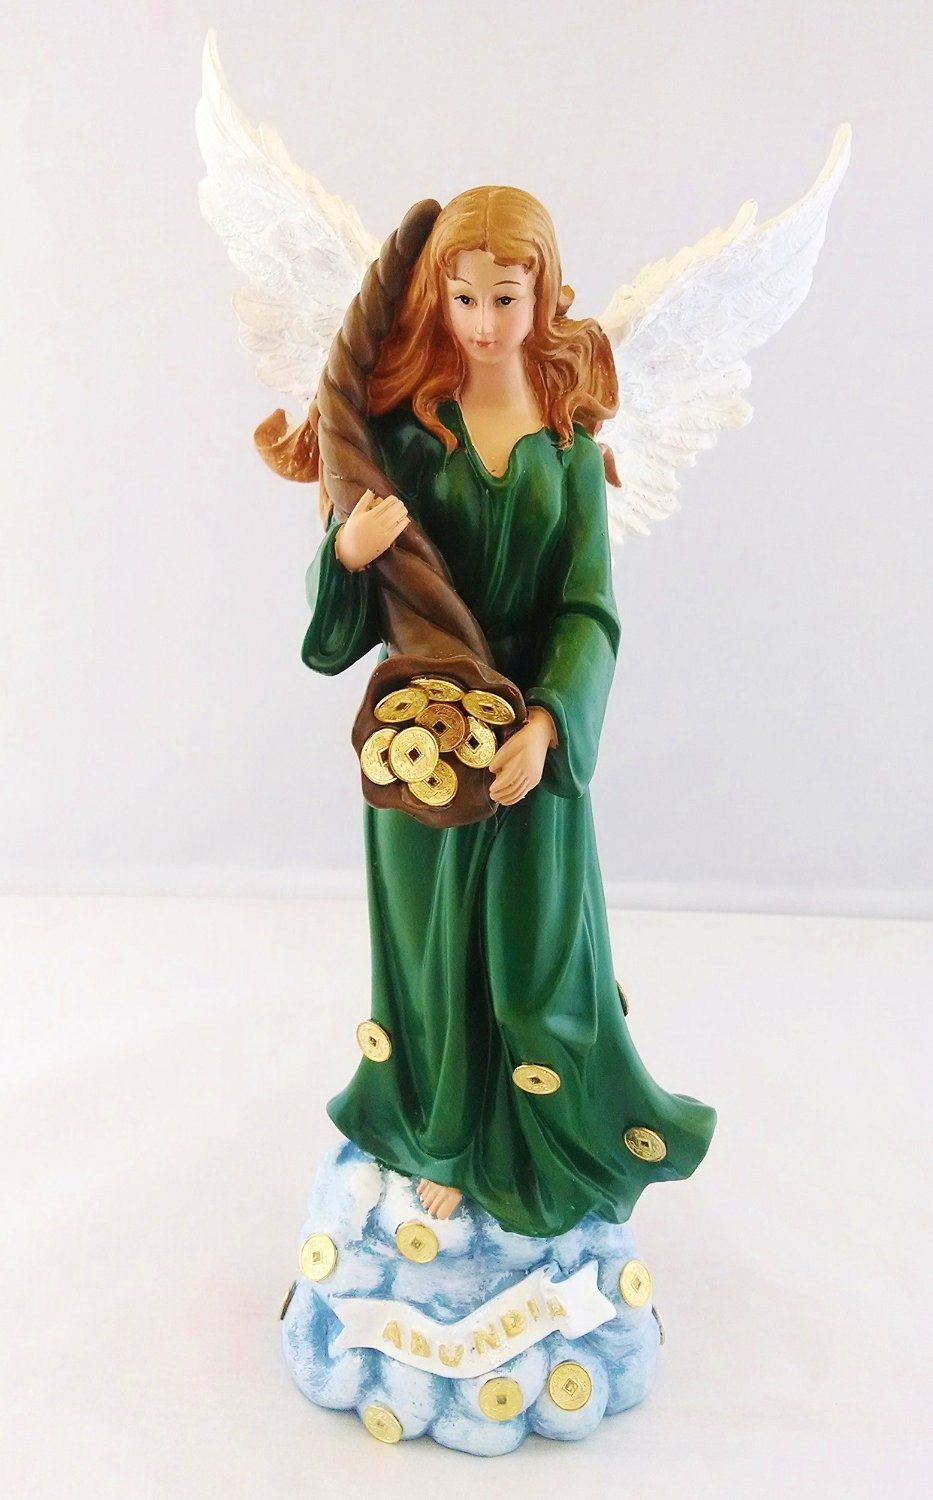 Amazon.com - 12 Inch Angel de la Abundancia Abundance Abundia Statue Figurine Image Figure - Other Products